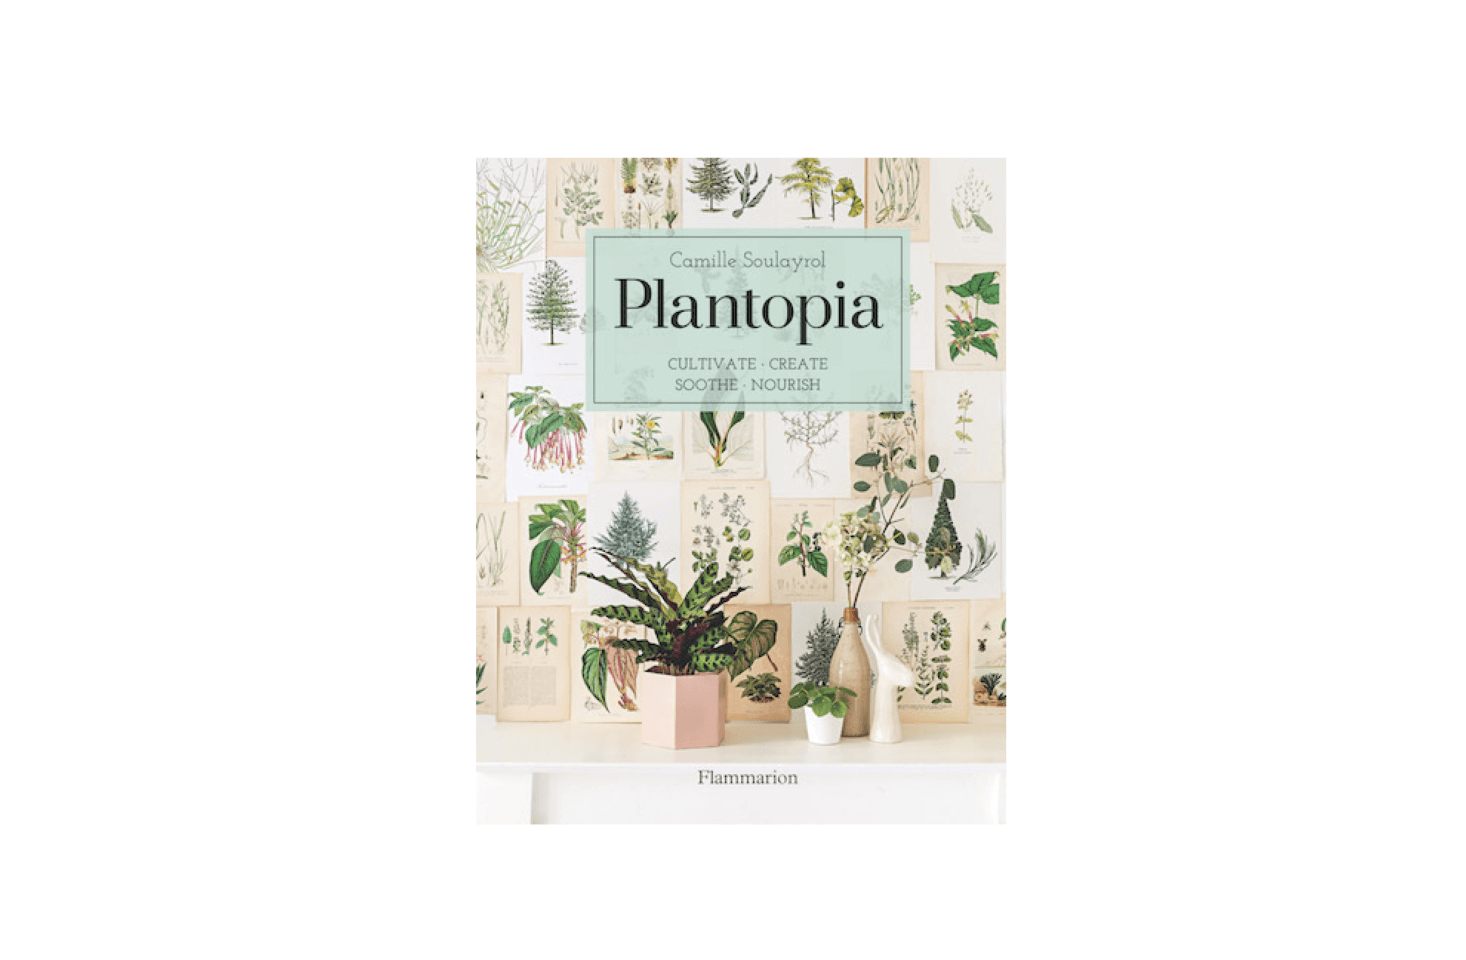 There are plenty of vogue-ish ideas here – how to make wreaths, terrariums, delicate himmeli, and chunky macramé planters, as well as a functional section on plant-based beauty products, including lip balms, body oils, and infusions which you can make at home too.